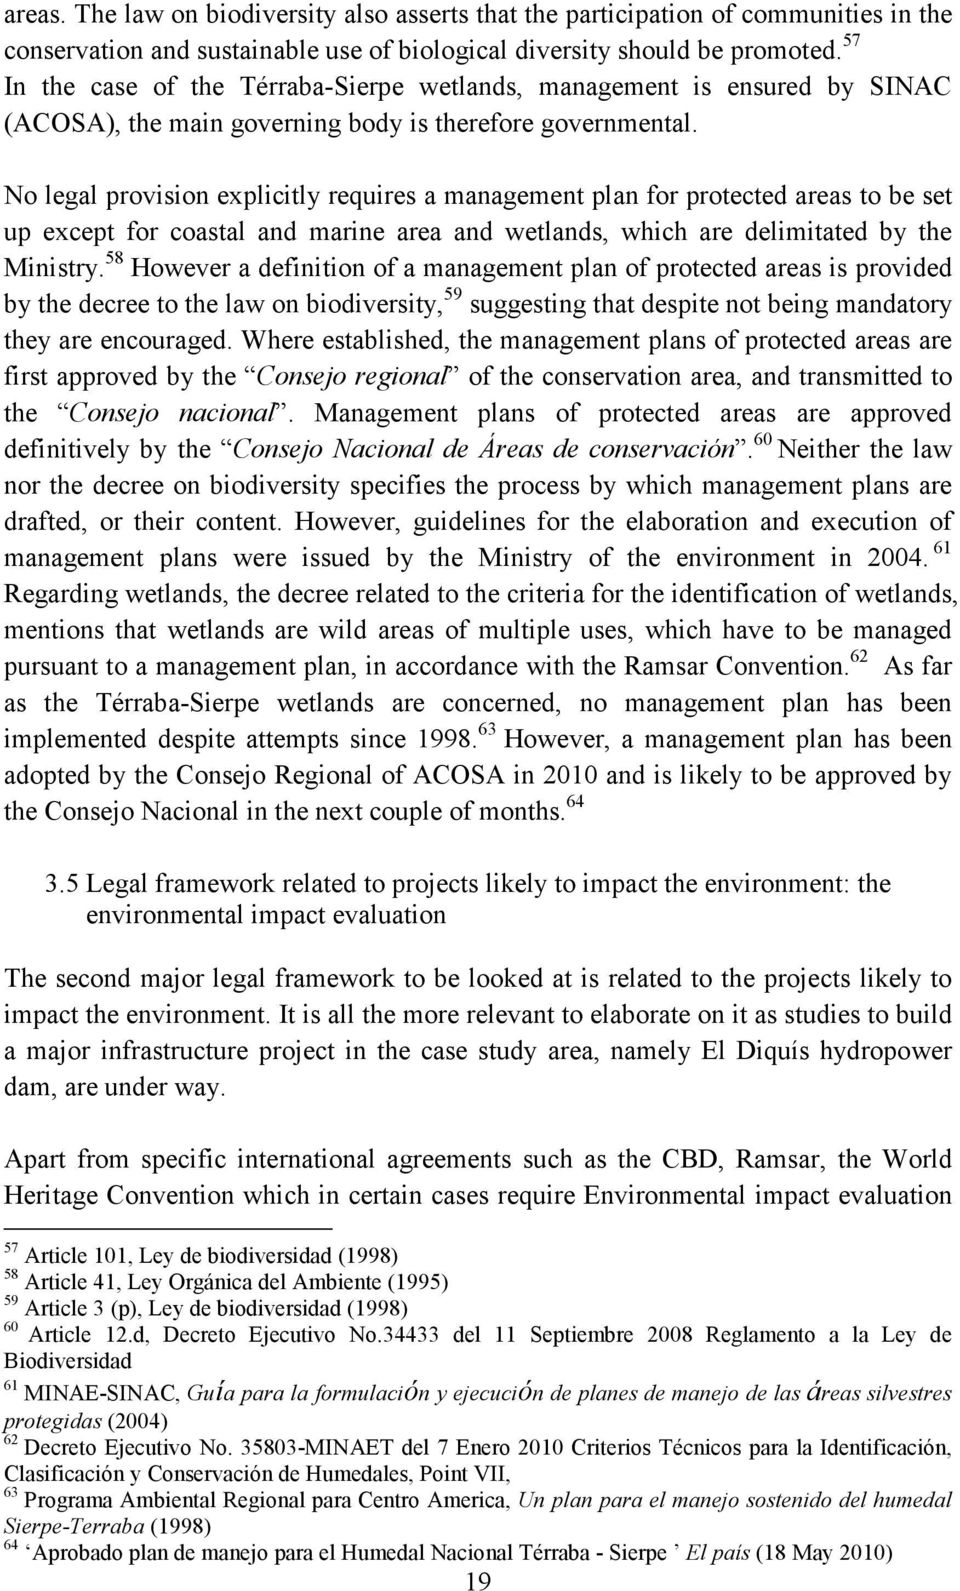 No legal provision explicitly requires a management plan for protected areas to be set up except for coastal and marine area and wetlands, which are delimitated by the Ministry.